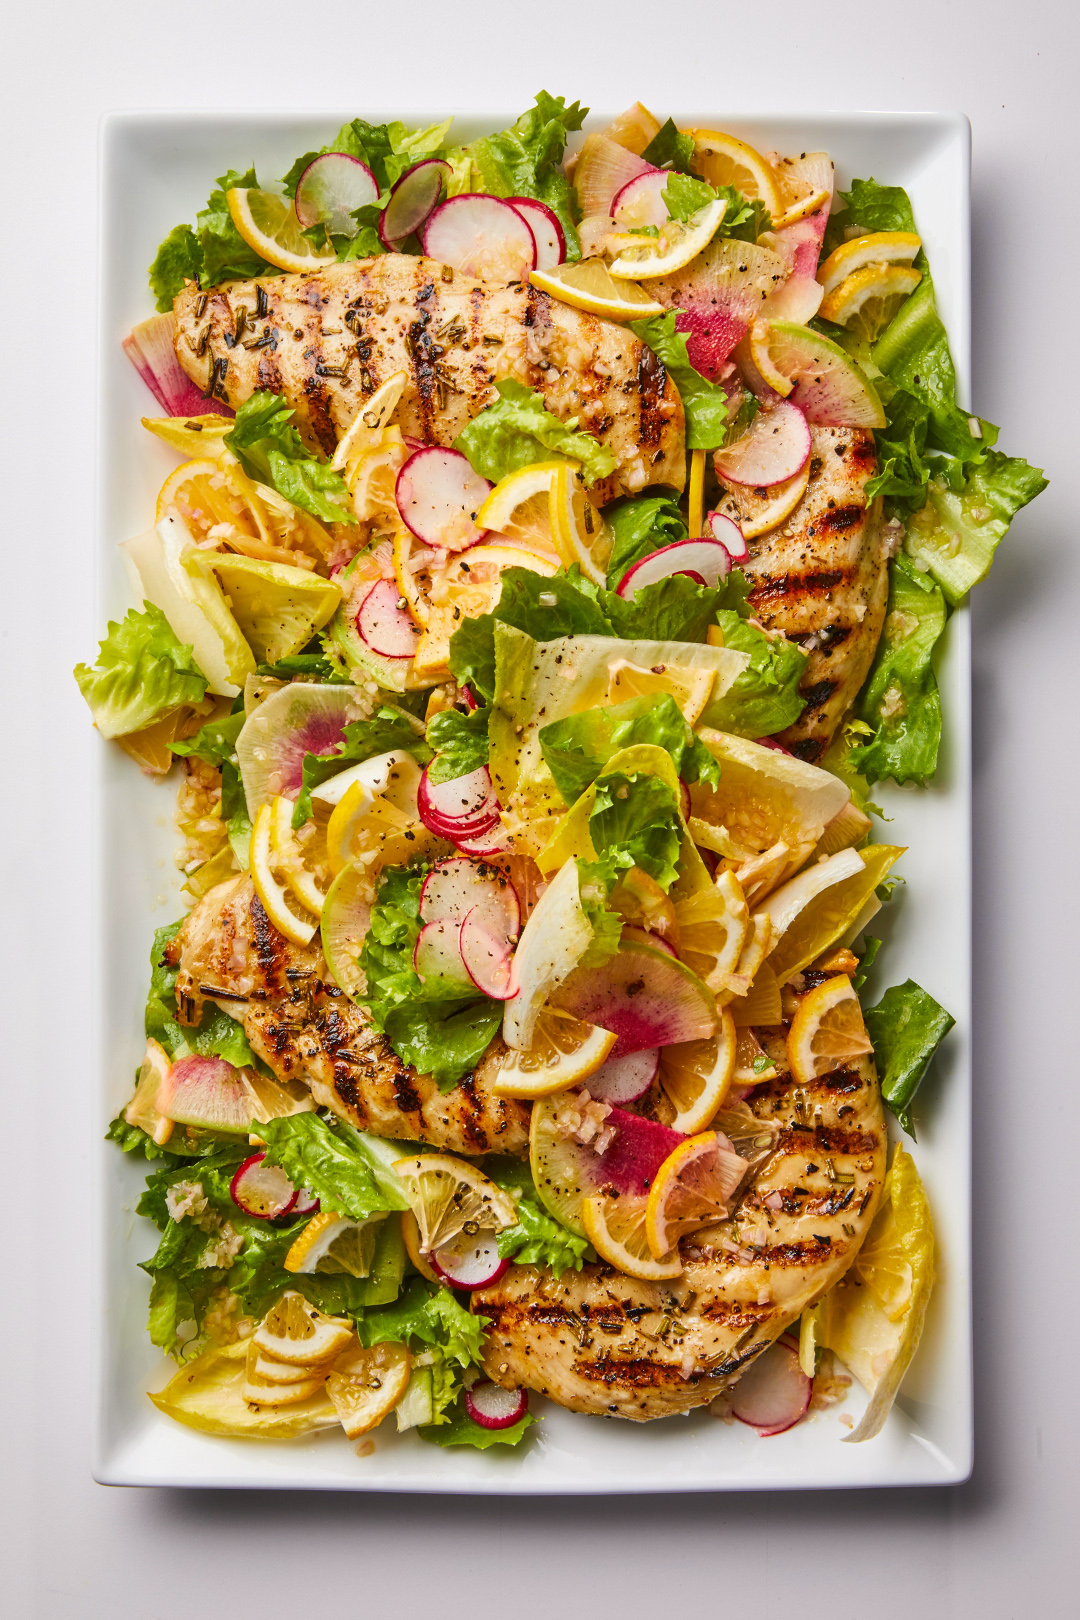 Meyer Lemon and Rosemary Chicken Salad on serving plate